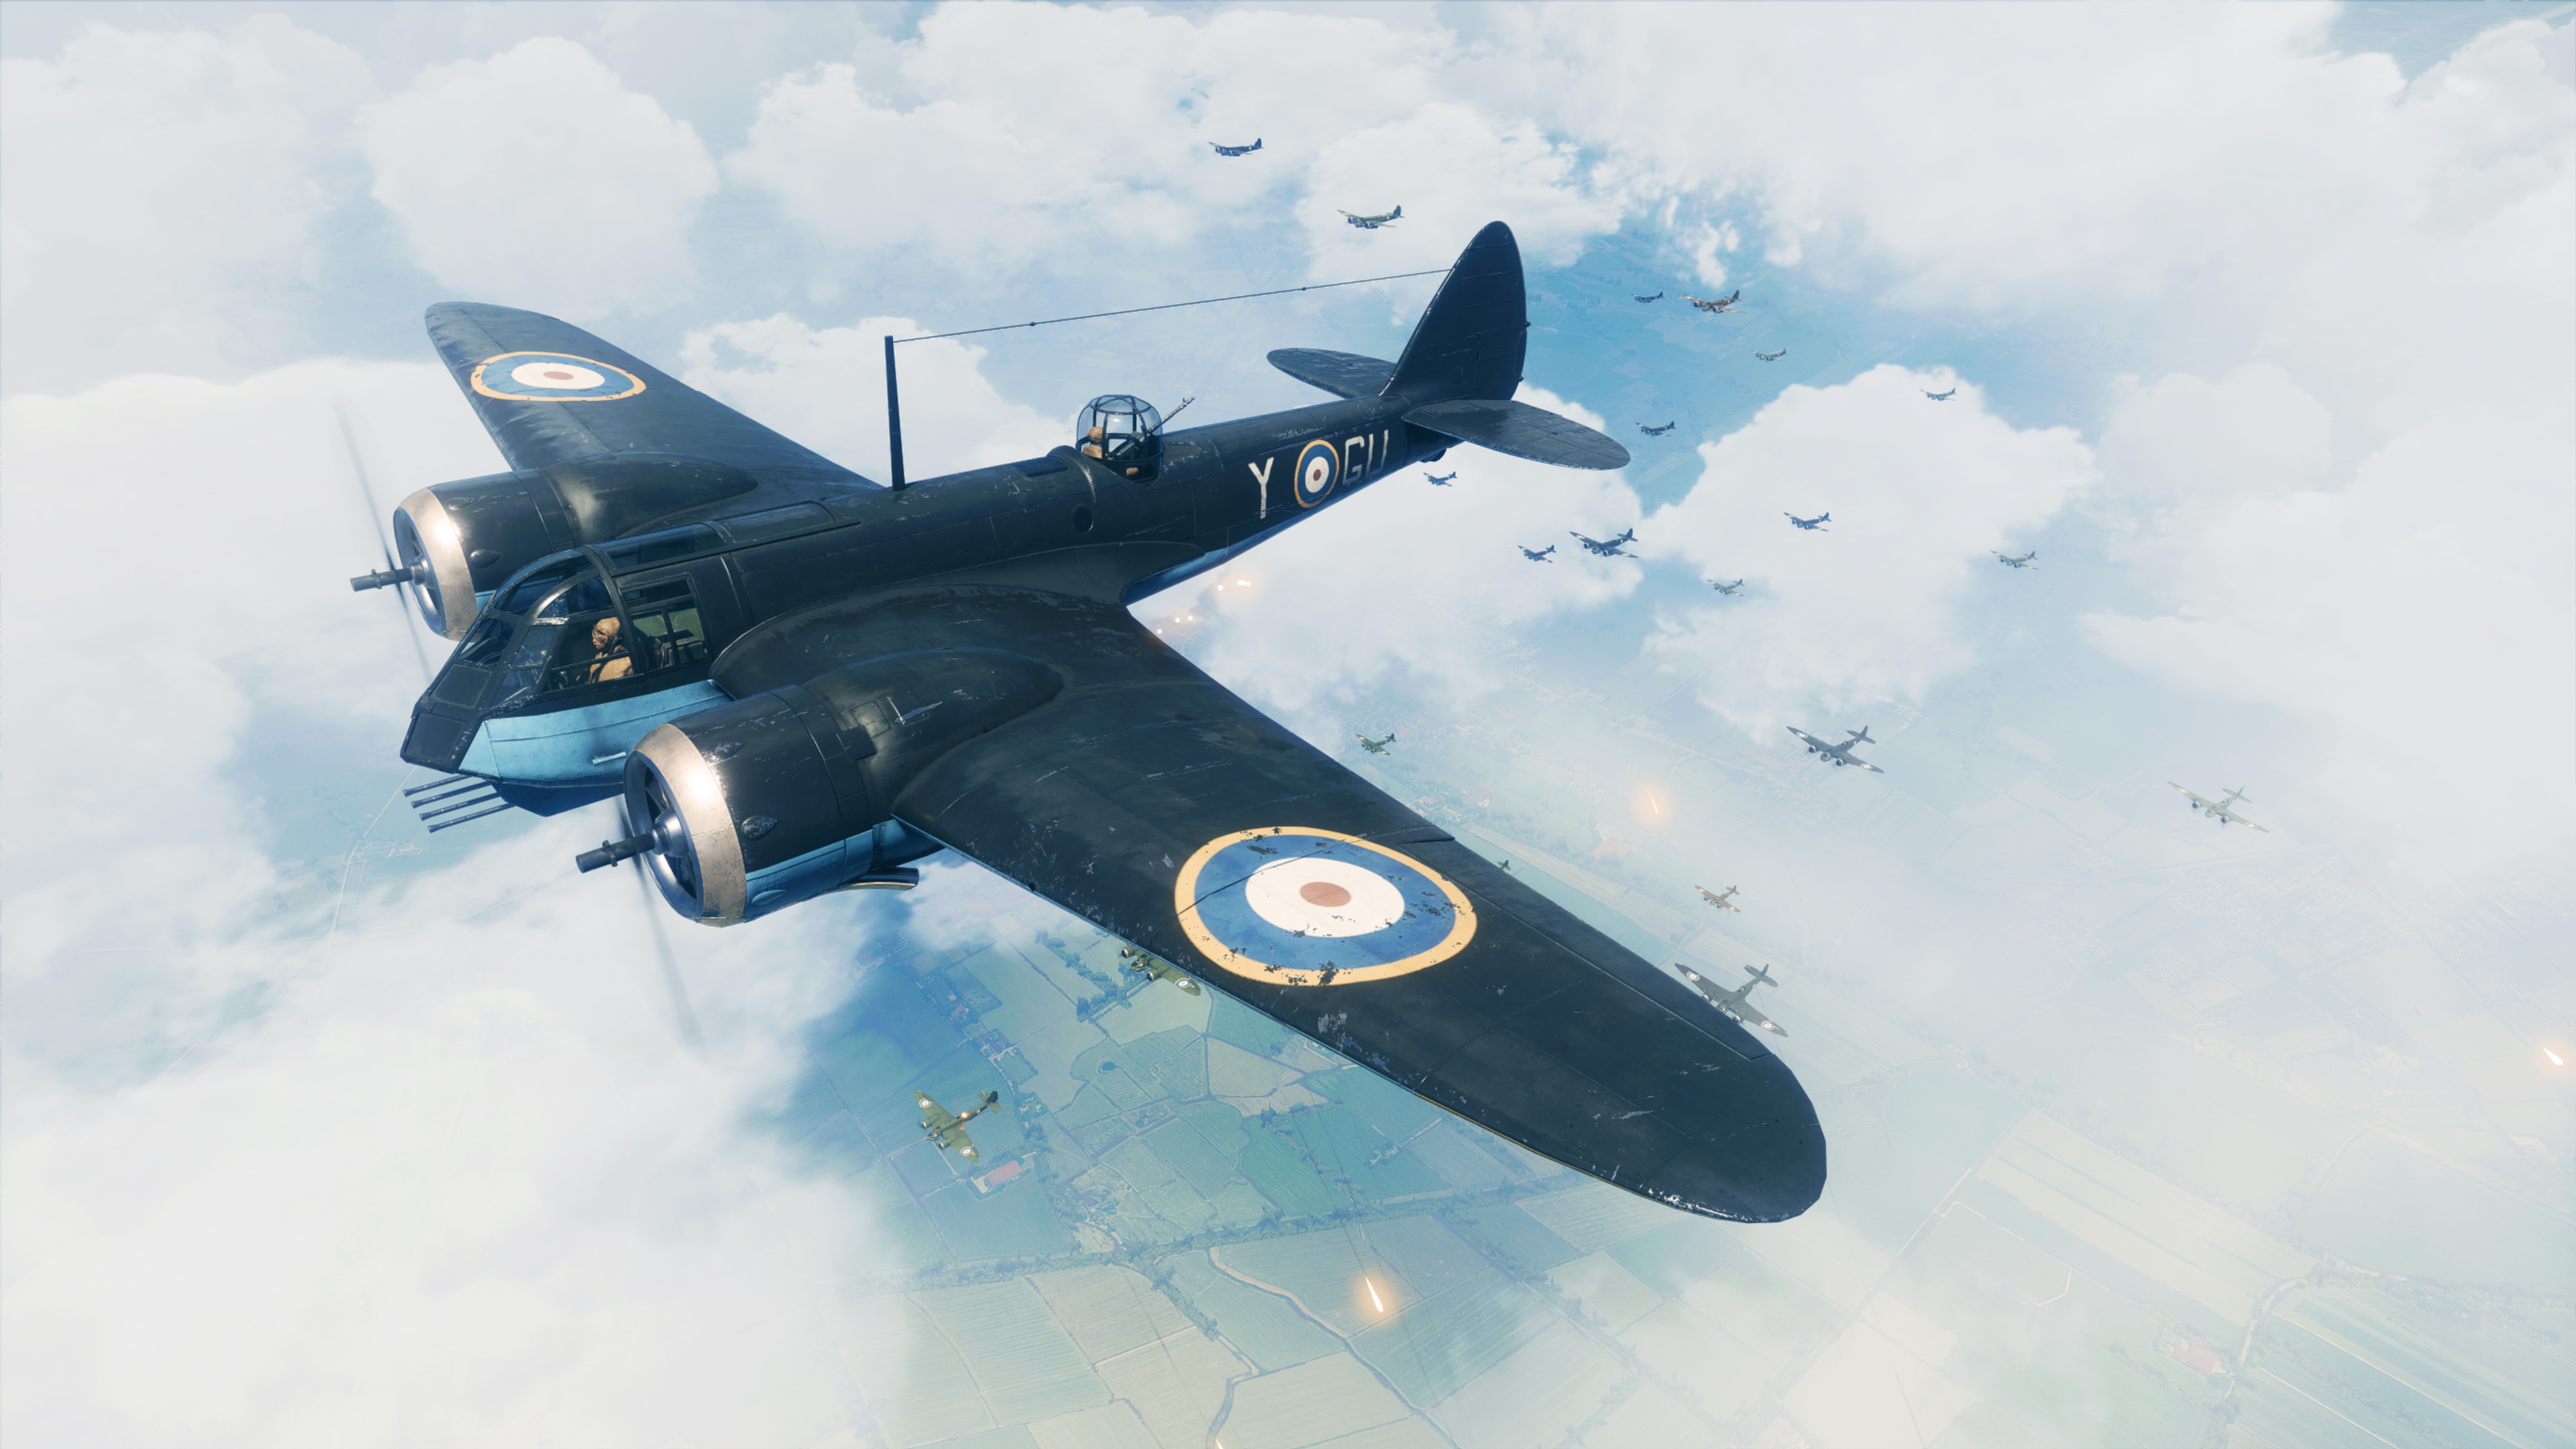 Wallpaper 4k Battlefield V Plane Fight 4k 2018 Games